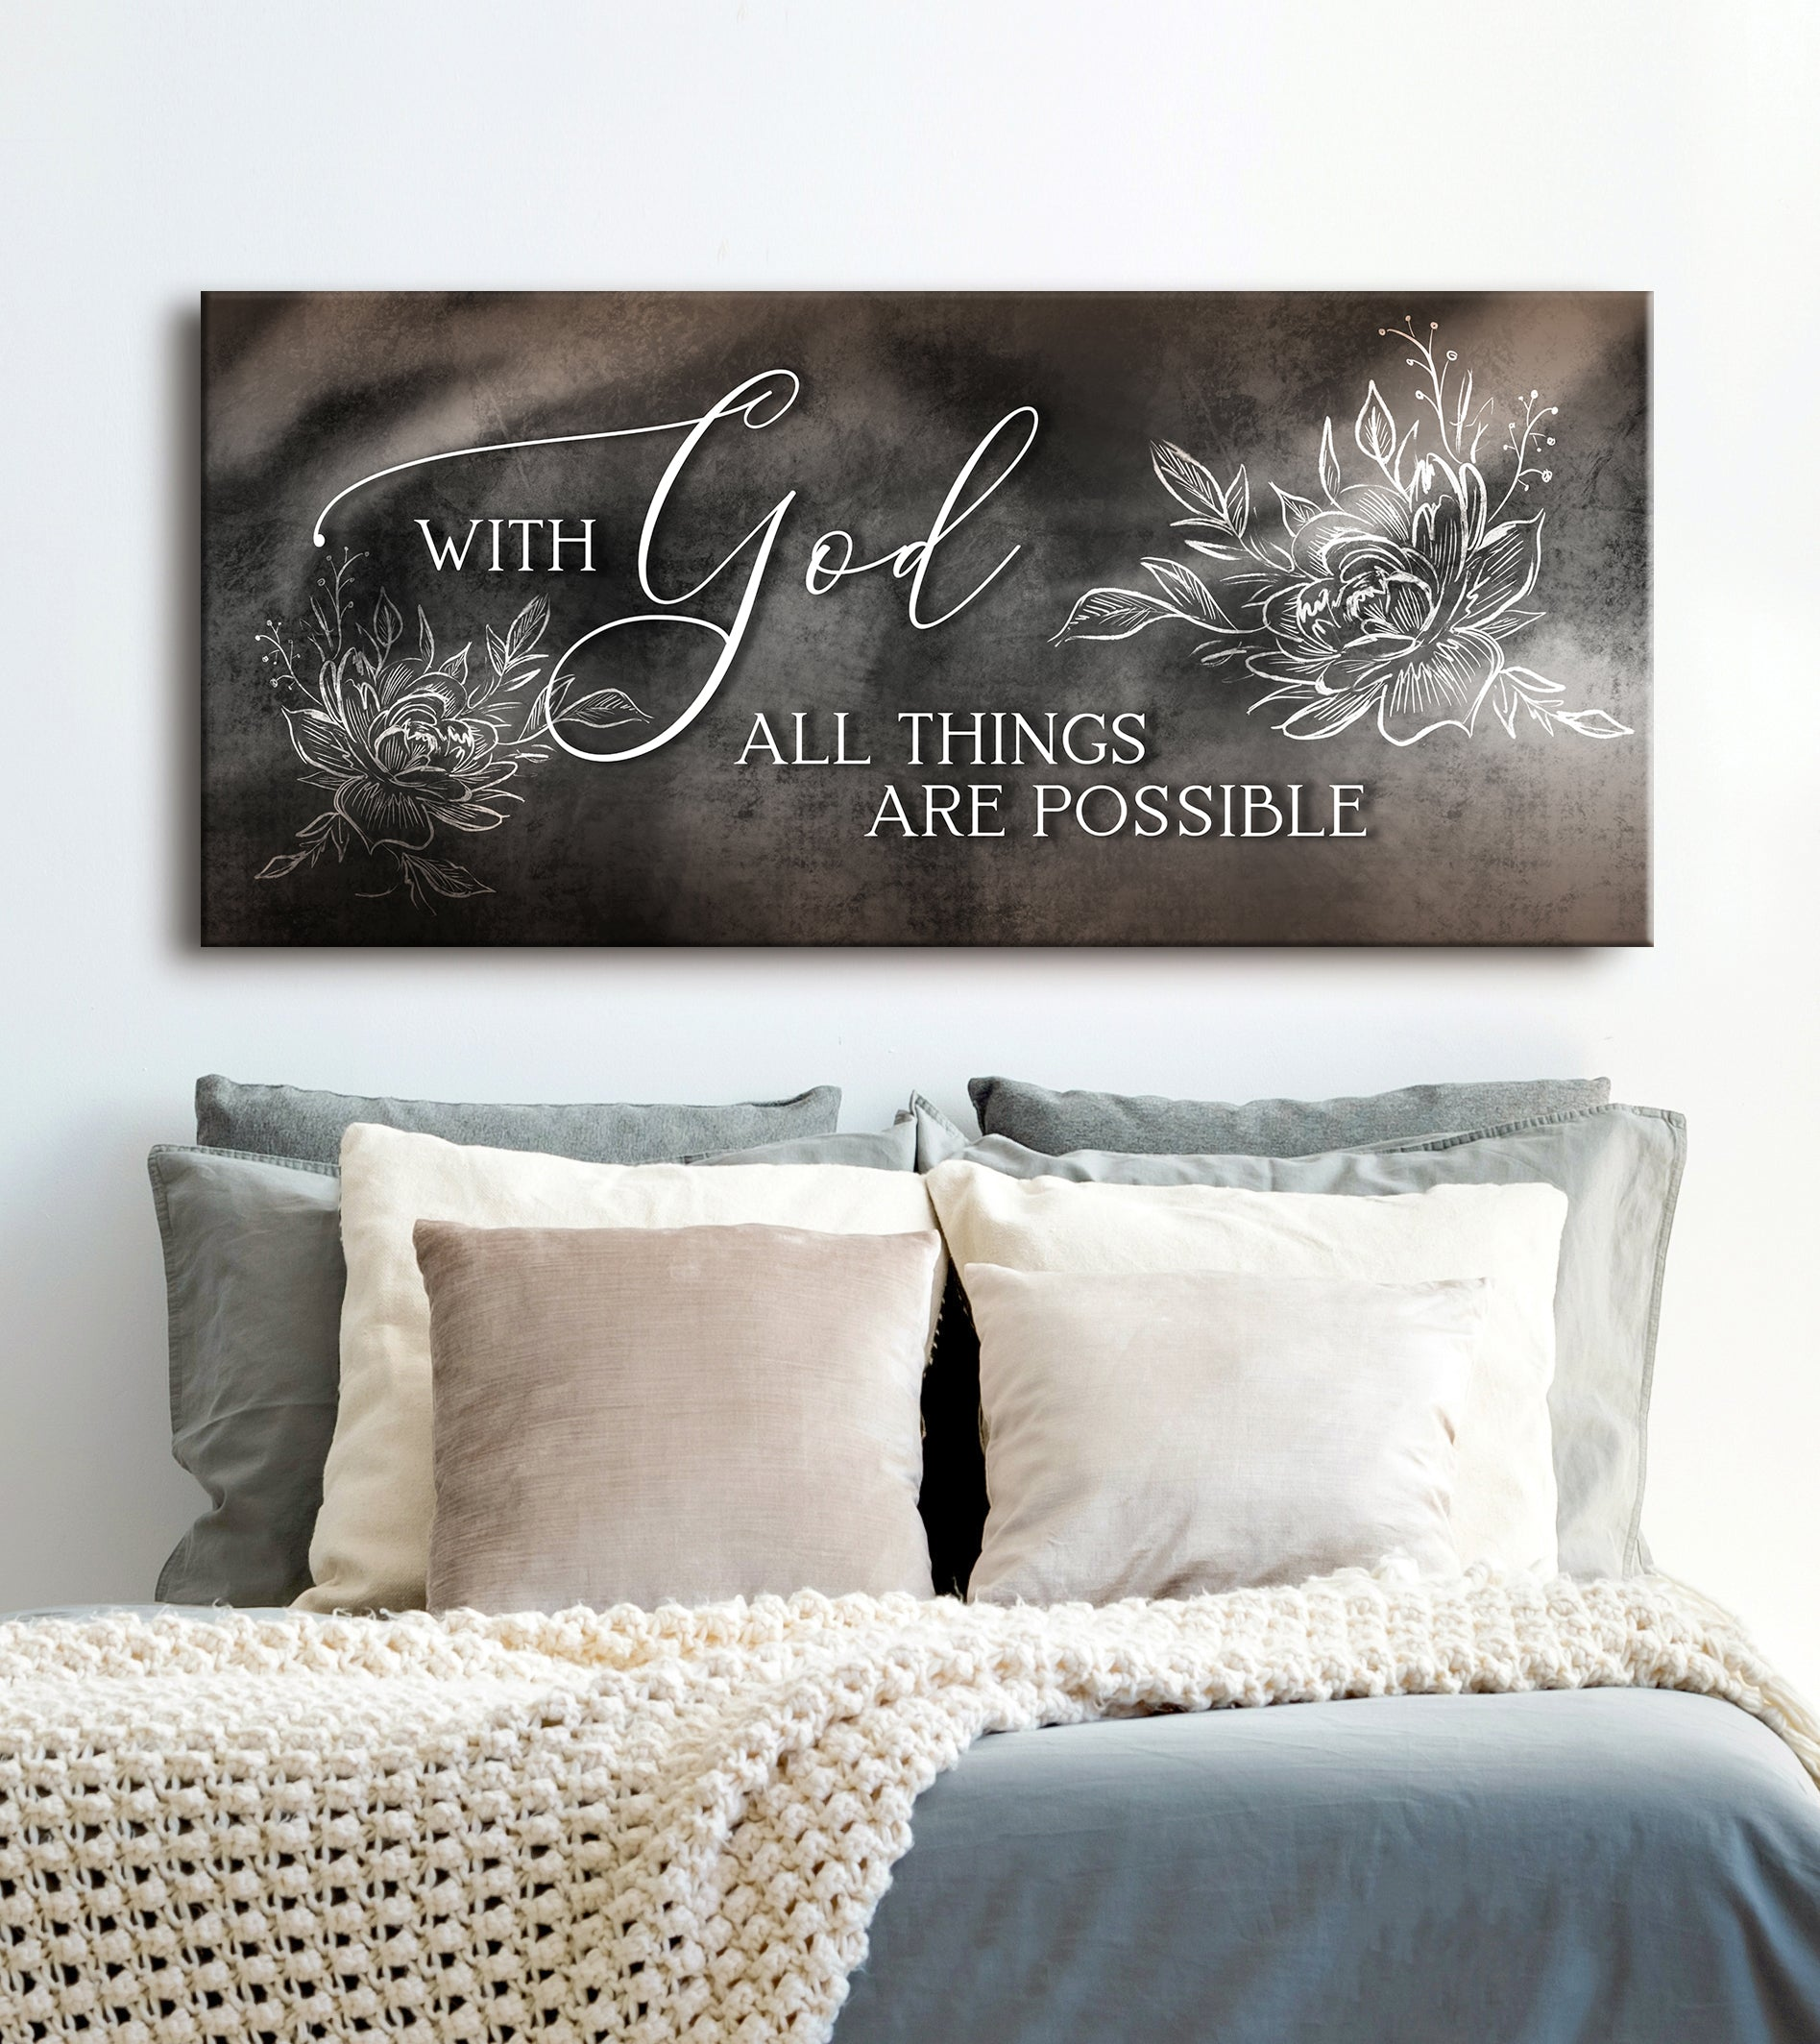 Christian Wall Art: With God All Things Are Possible V2 (Wood Frame Ready To Hang)